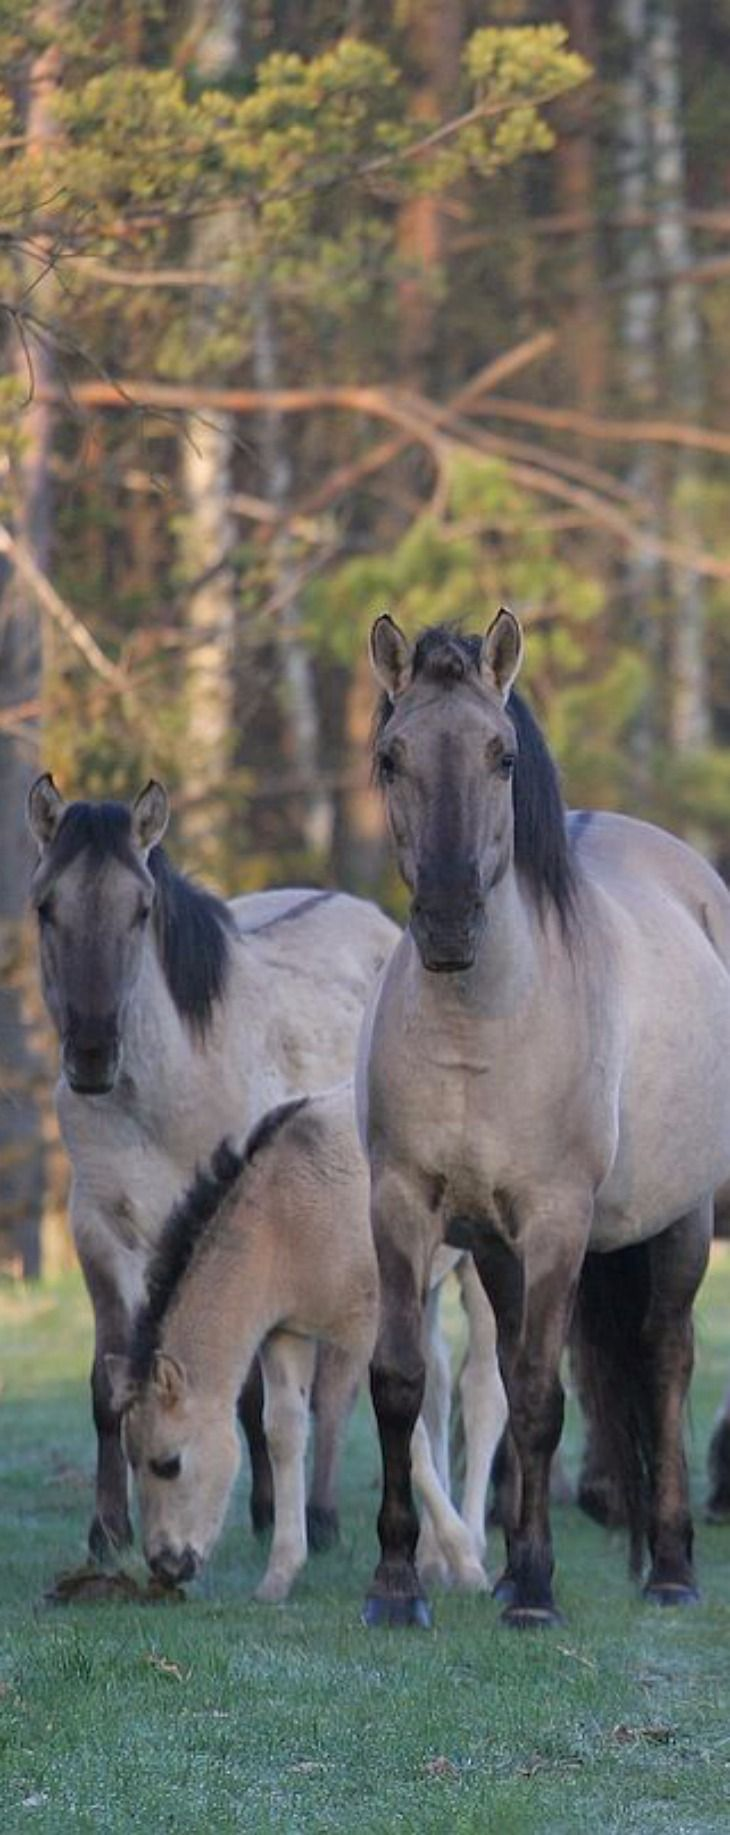 The Polish Pony - breed of primitive horse in Poland. Poland, Roztocze National Park